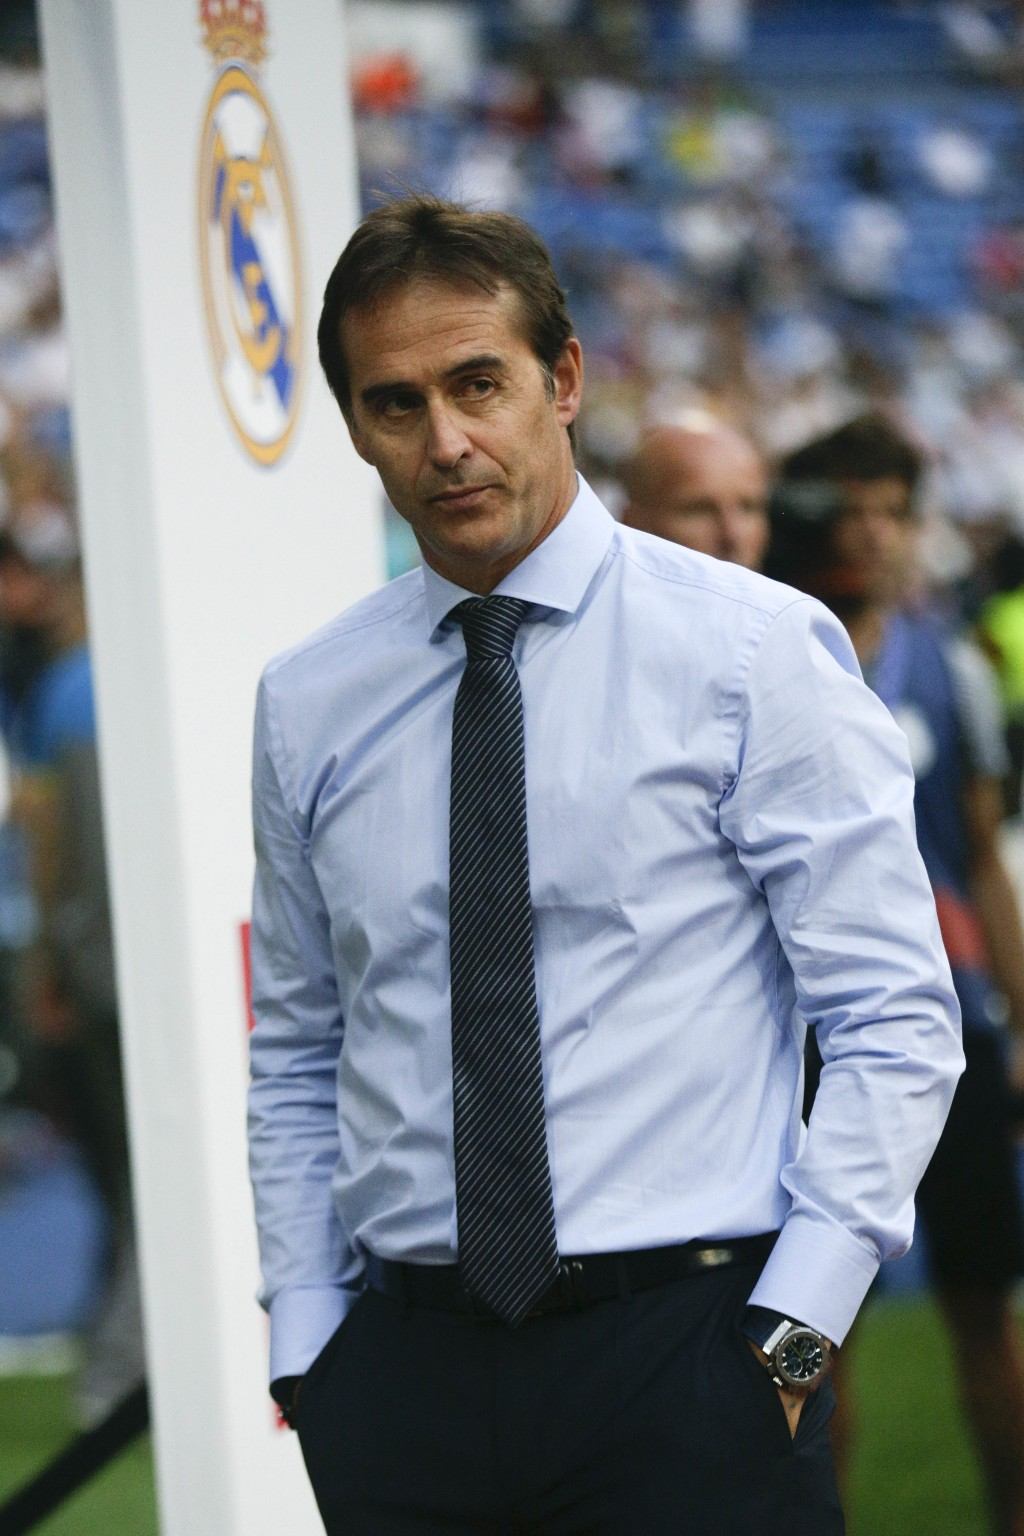 FILE - In this Saturday, Aug. 11, 2018 file photo, Real Madrid's head coach Julen Lopetegui waits for the start of the Santiago Bernabeu trophy soccer...